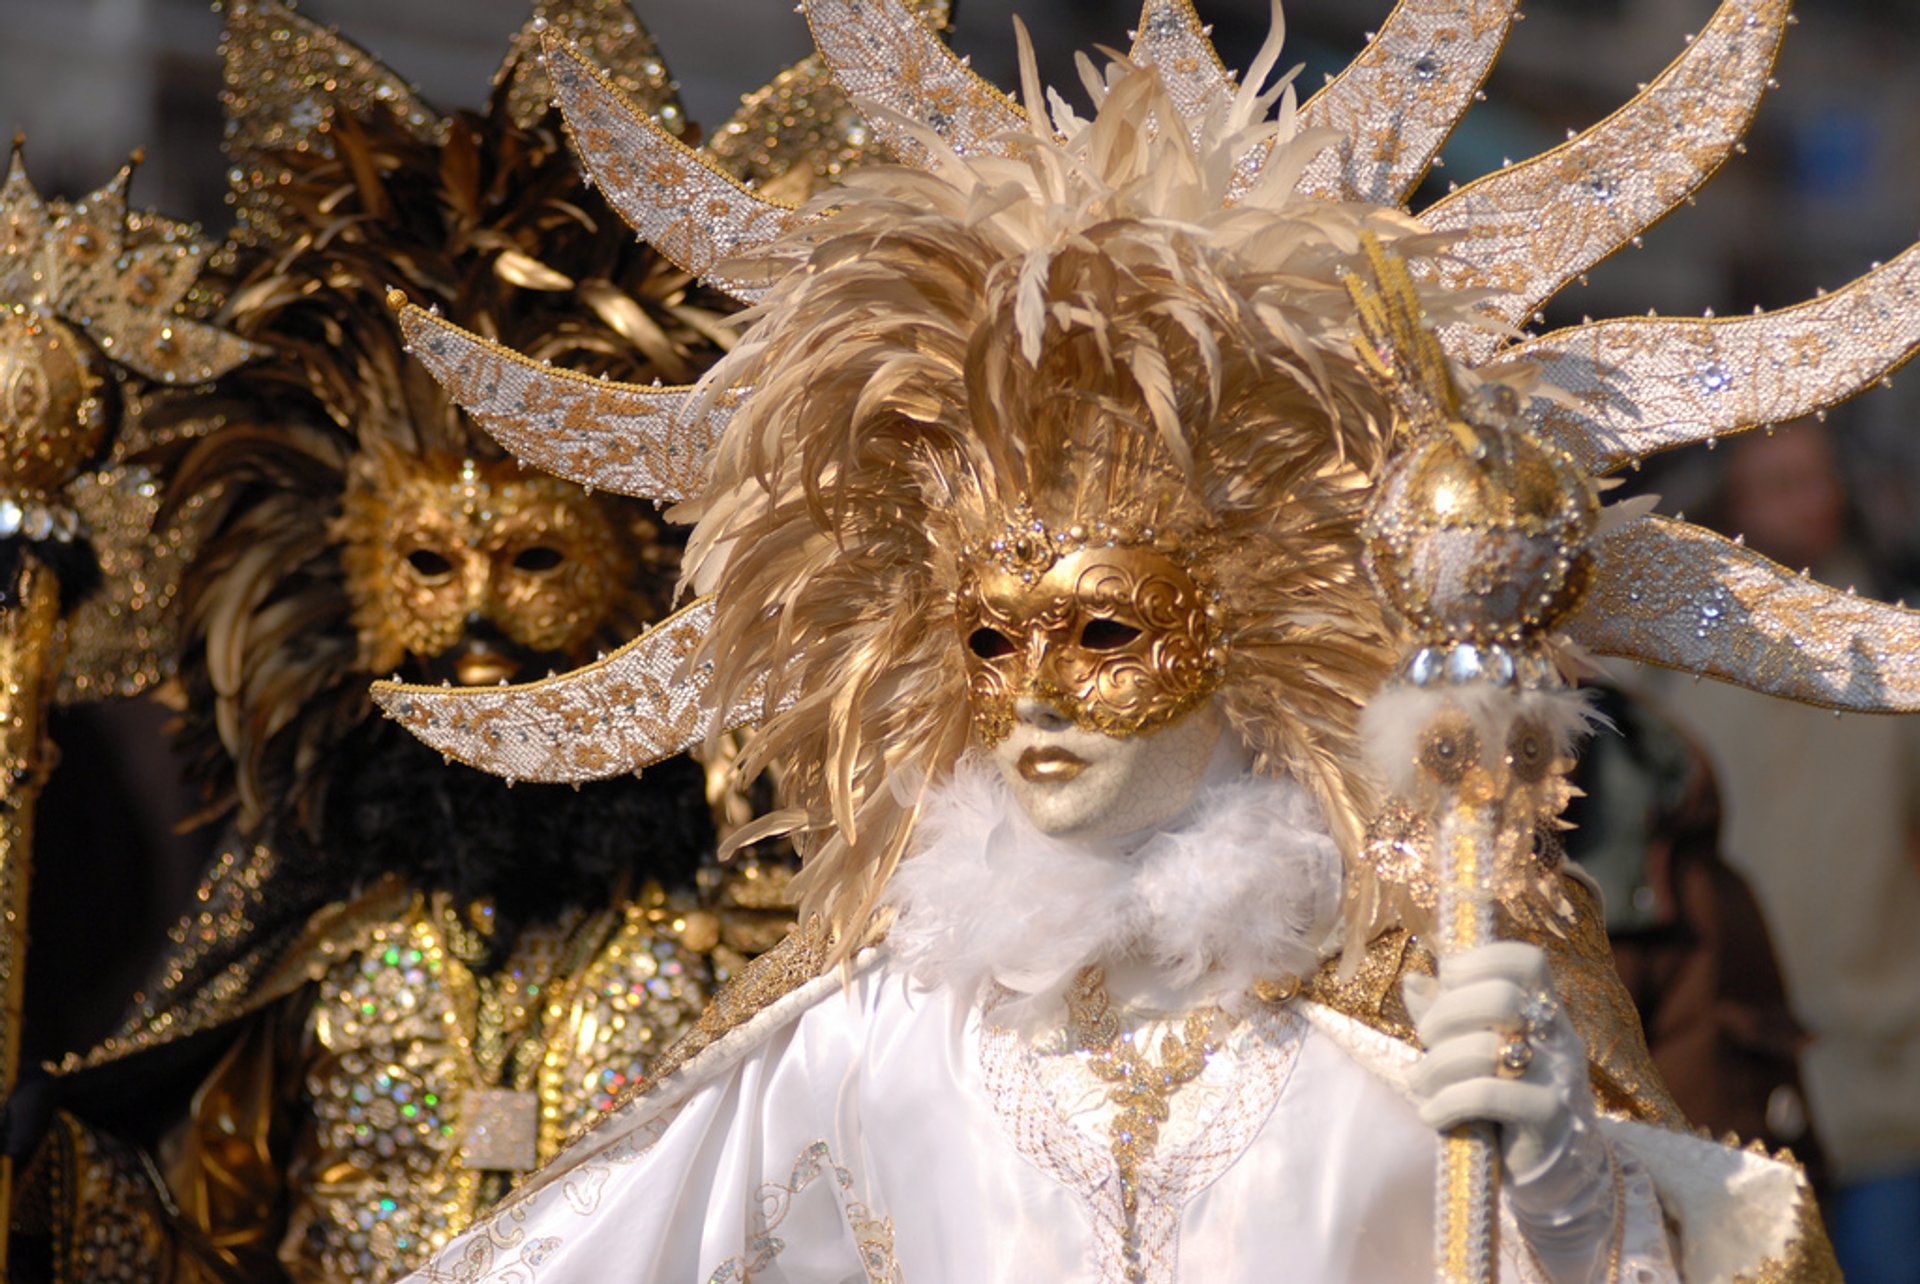 Carnevale Venezia in Venice - Best Season 2019